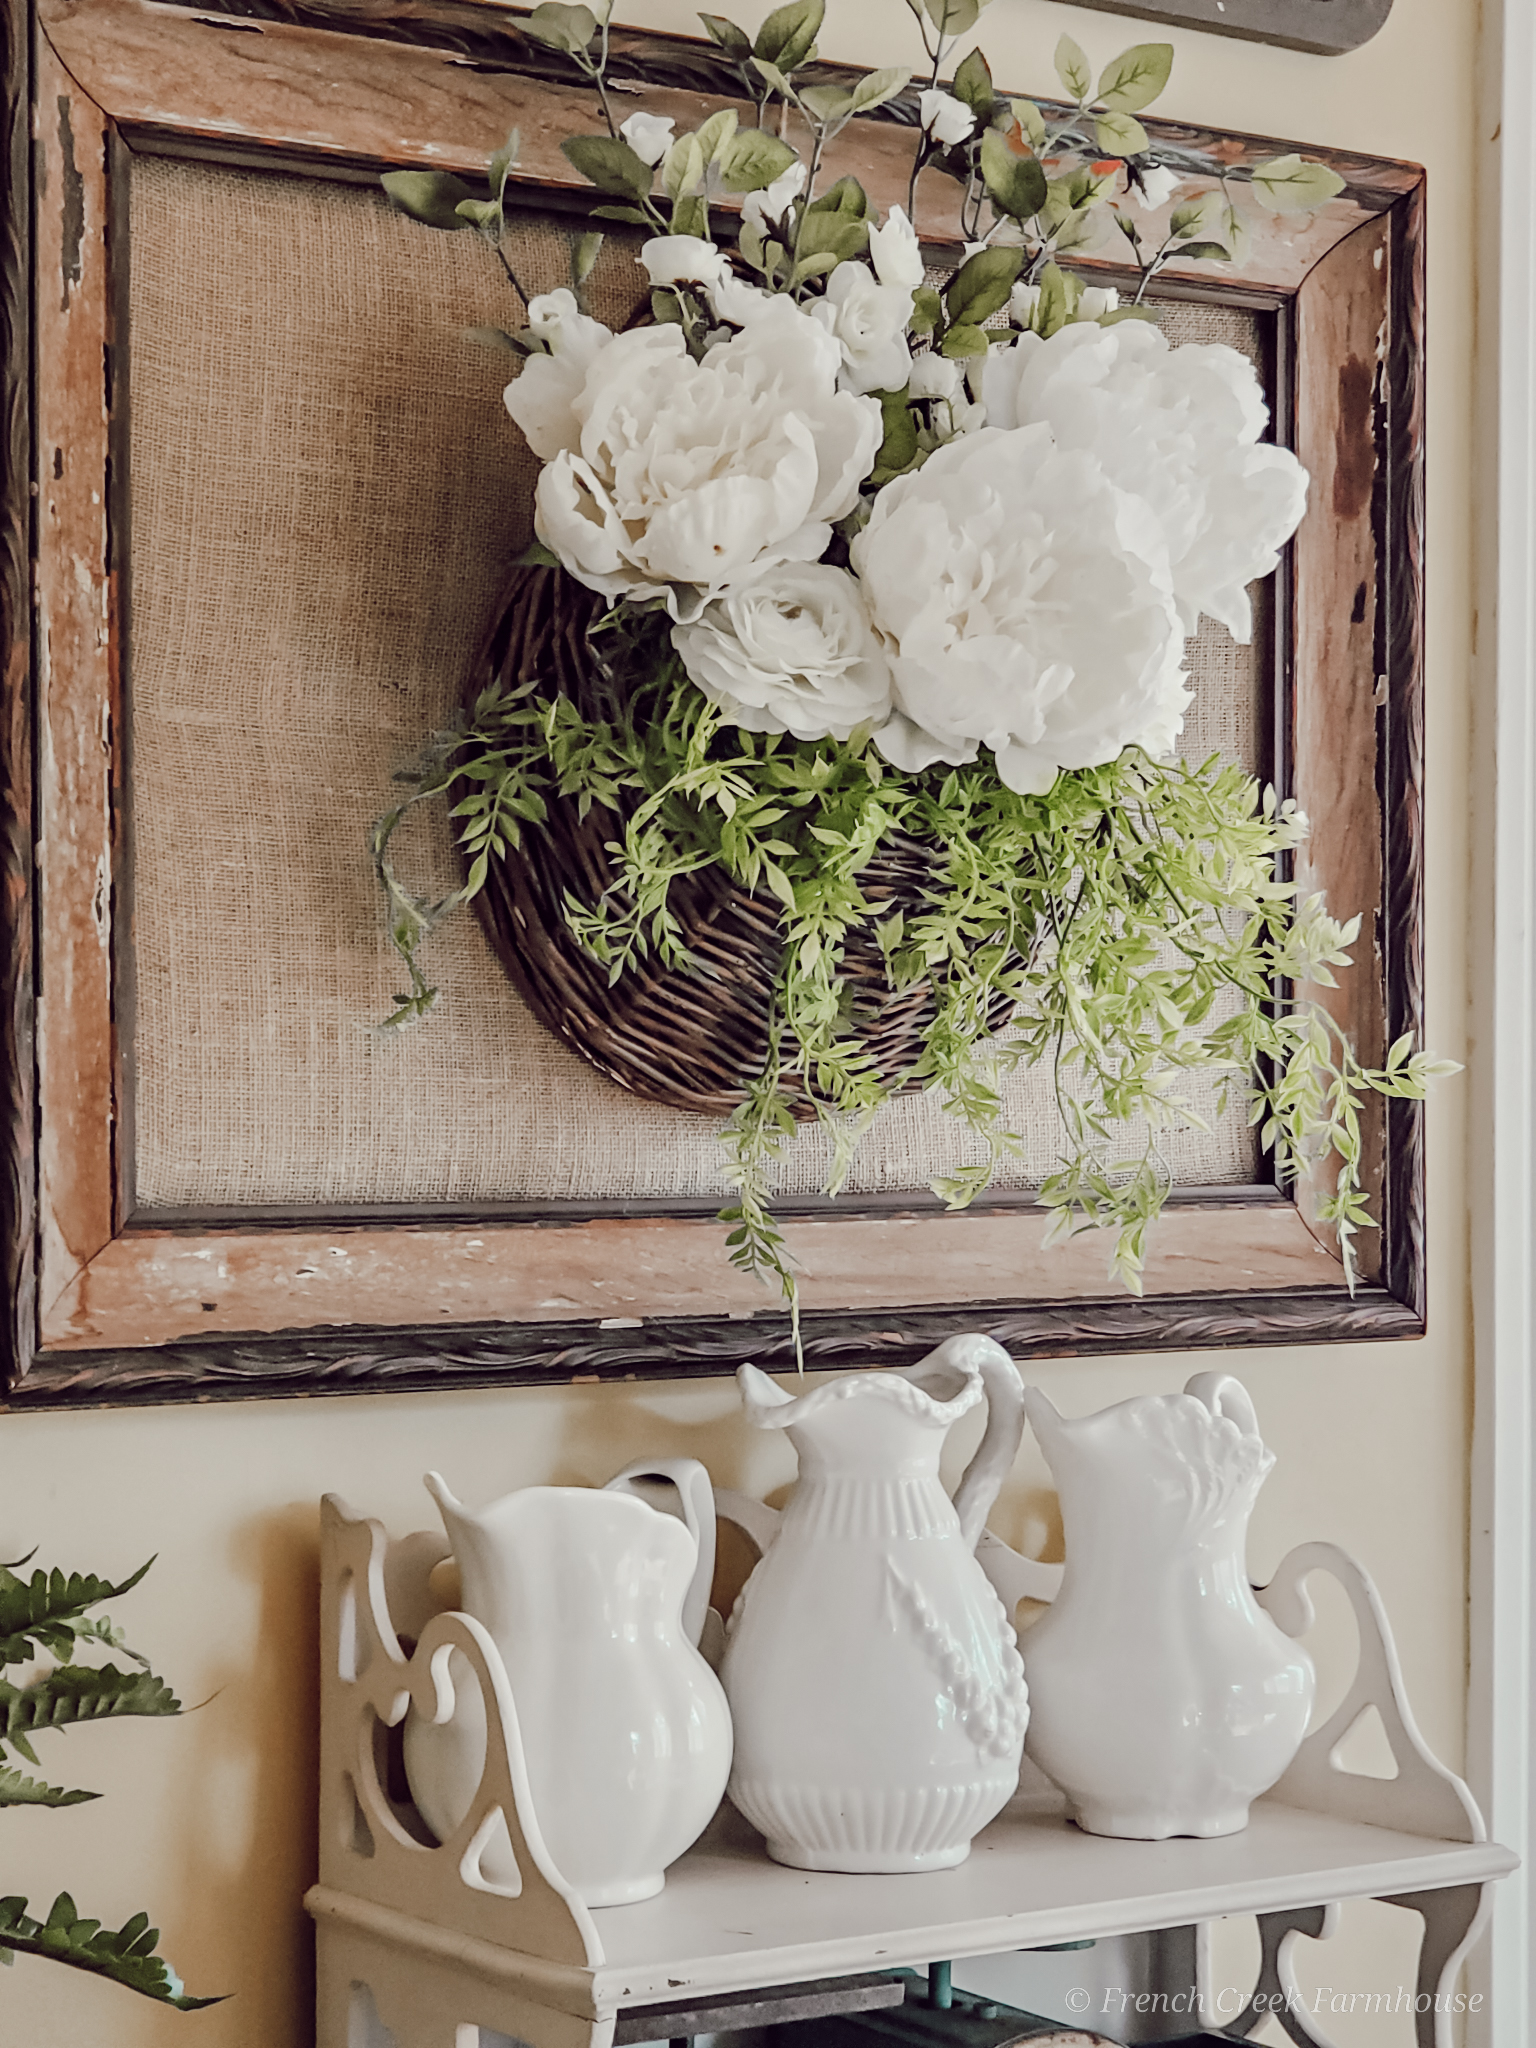 Wall hanging basket filled with white peonies